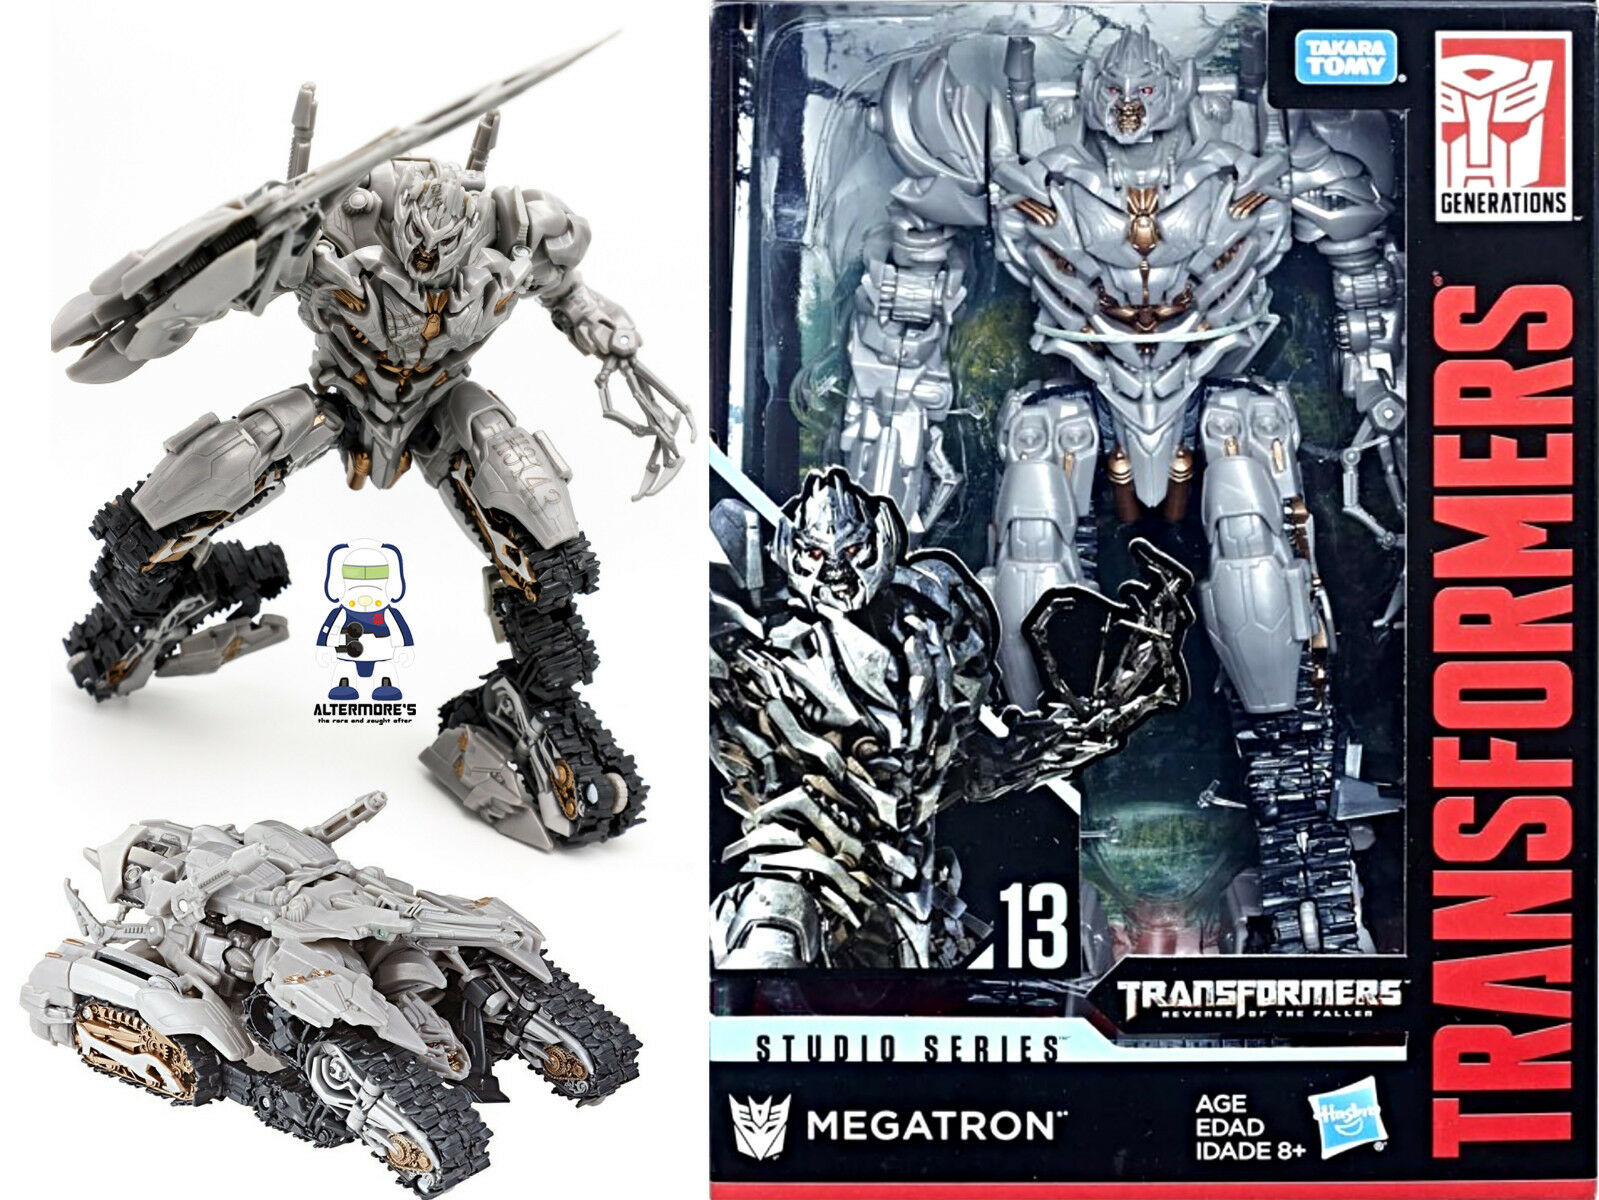 Transformers Move Studio Series SS-13 Voyager redF Megatron Brand New